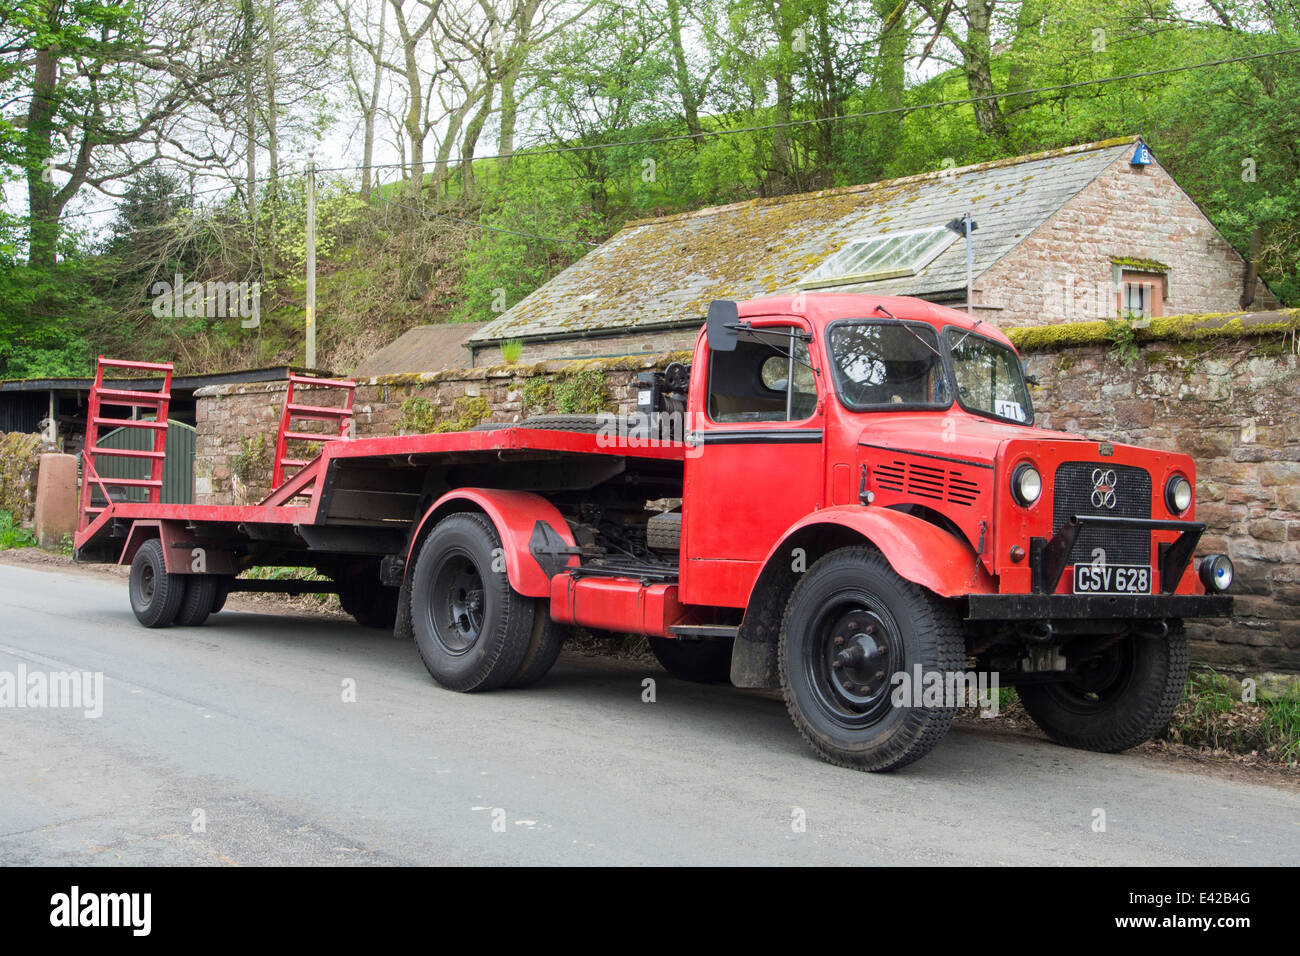 An old Bedford truck in Kirkoswold, Eden Valley, Cumbria, UK. - Stock Image